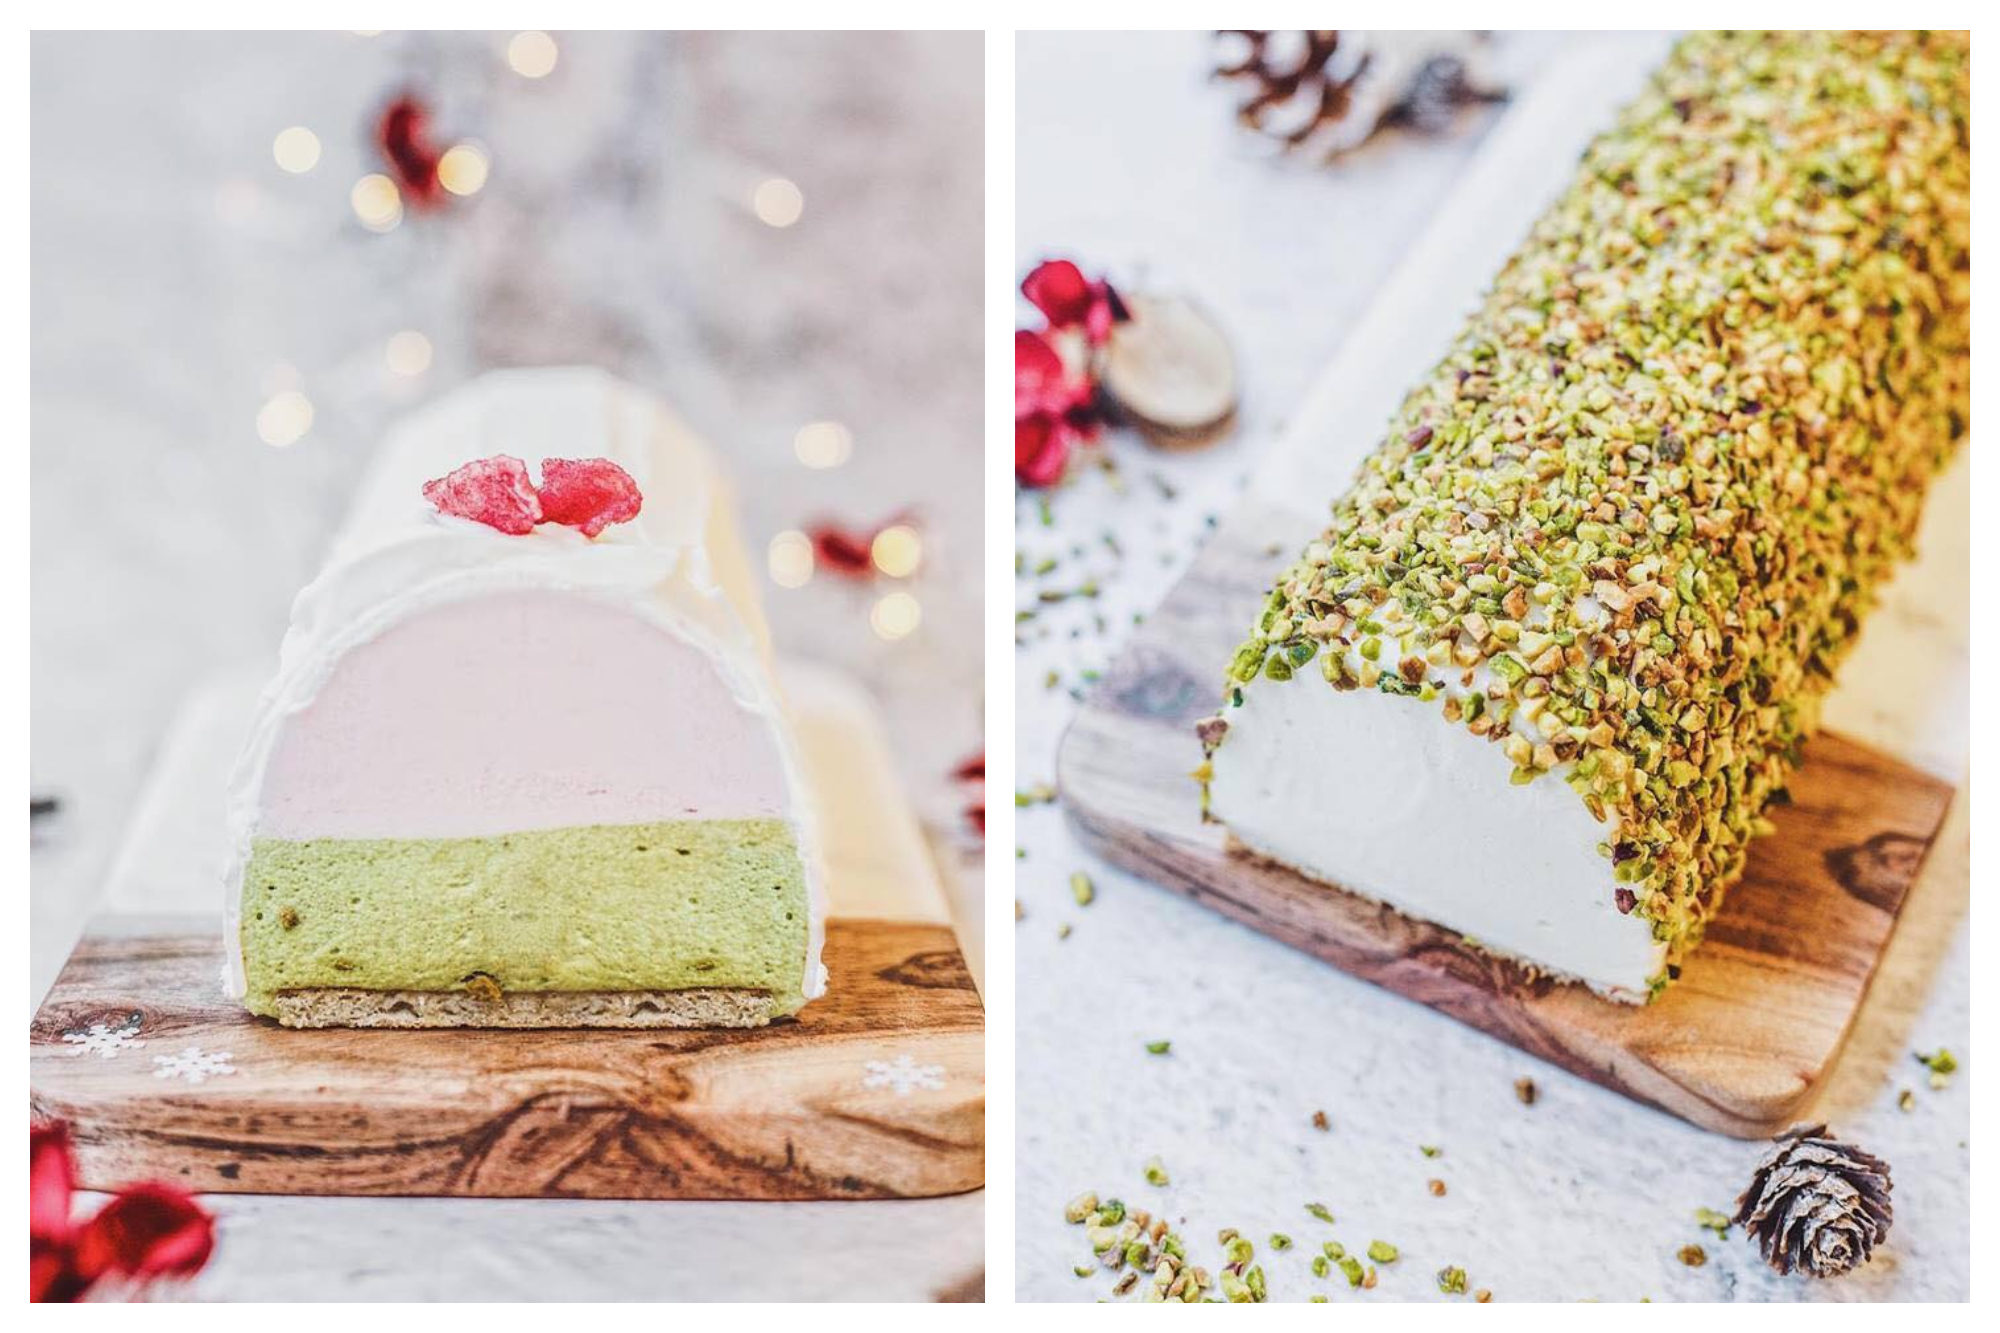 A strawberry and pistachio ice cream cake covered with crushed pistachios